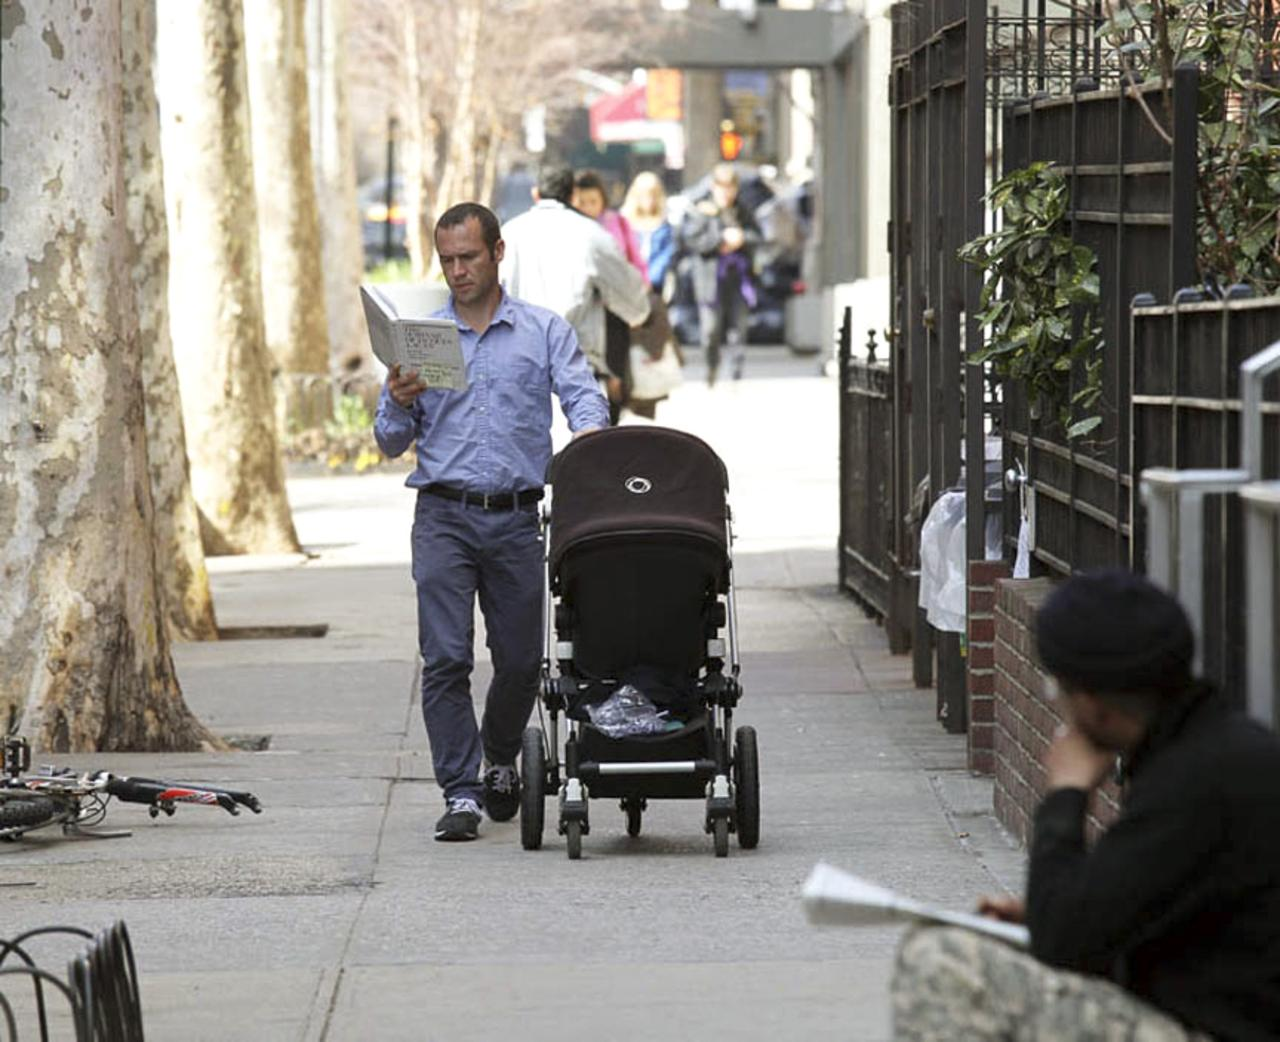 A man reads a book while pushing a stroller on 12th Street near Third Avenue.